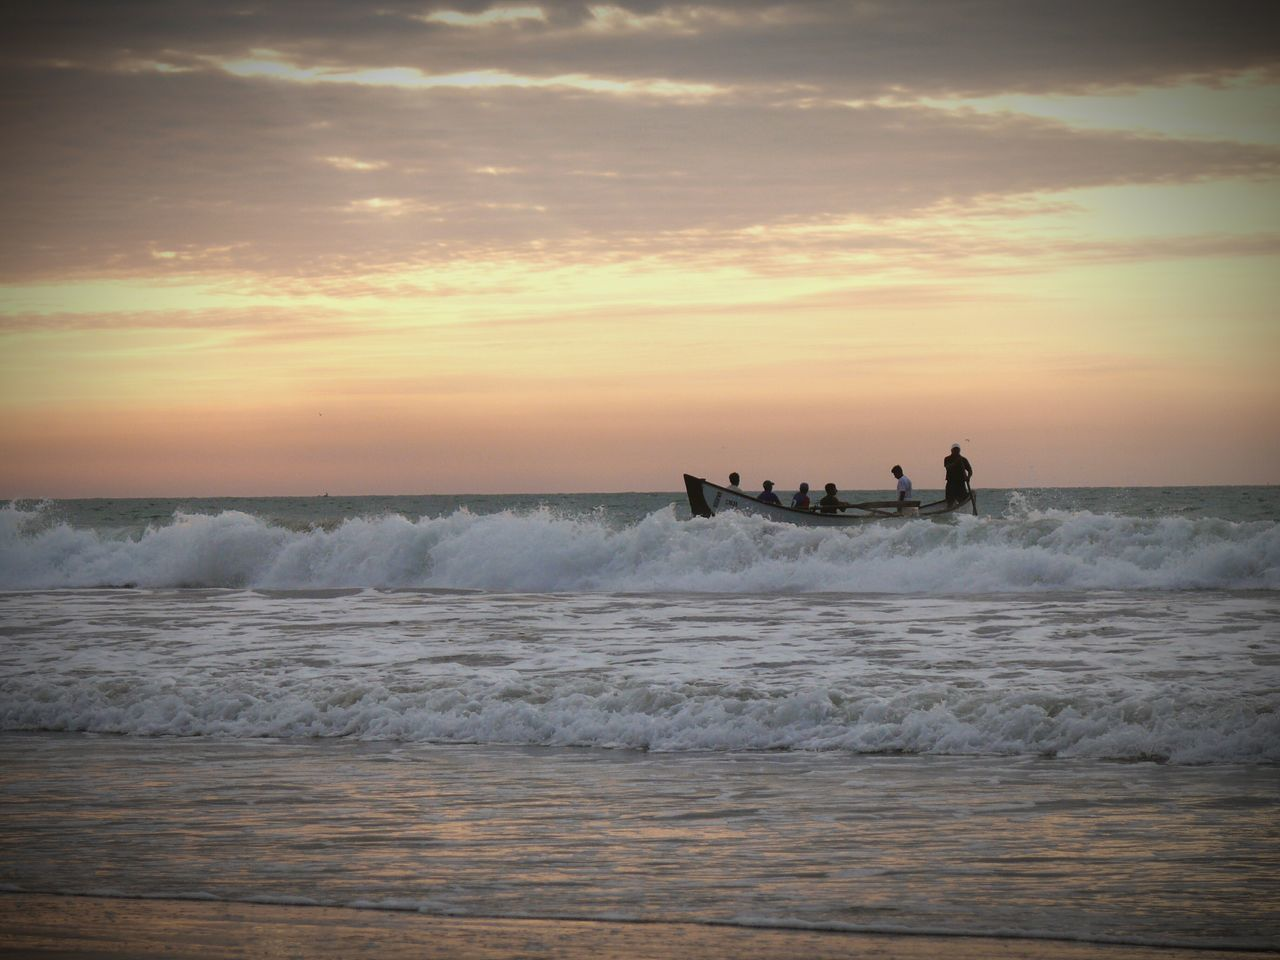 People In Boat On Sea Against Sunset Sky